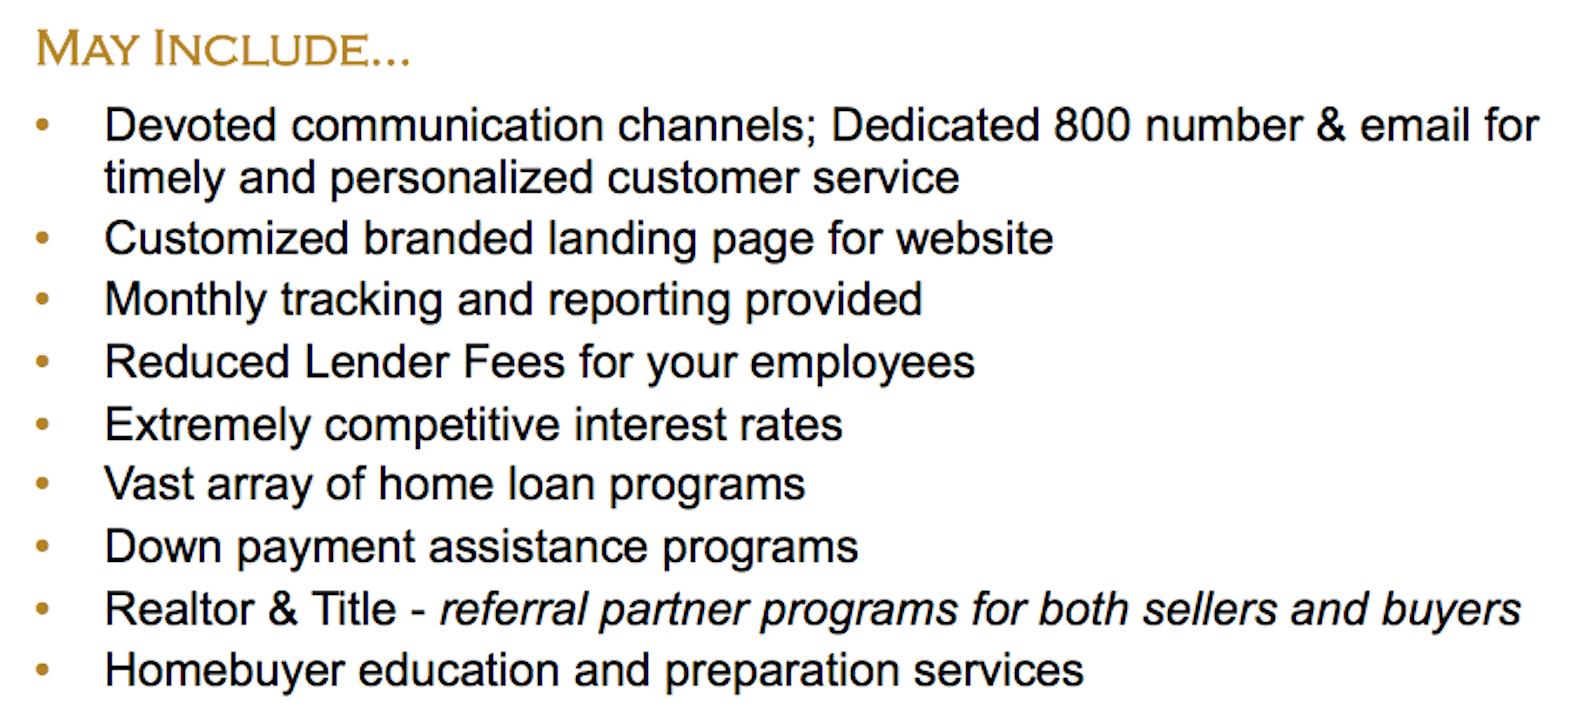 Land Home Financial Service for Your Employees